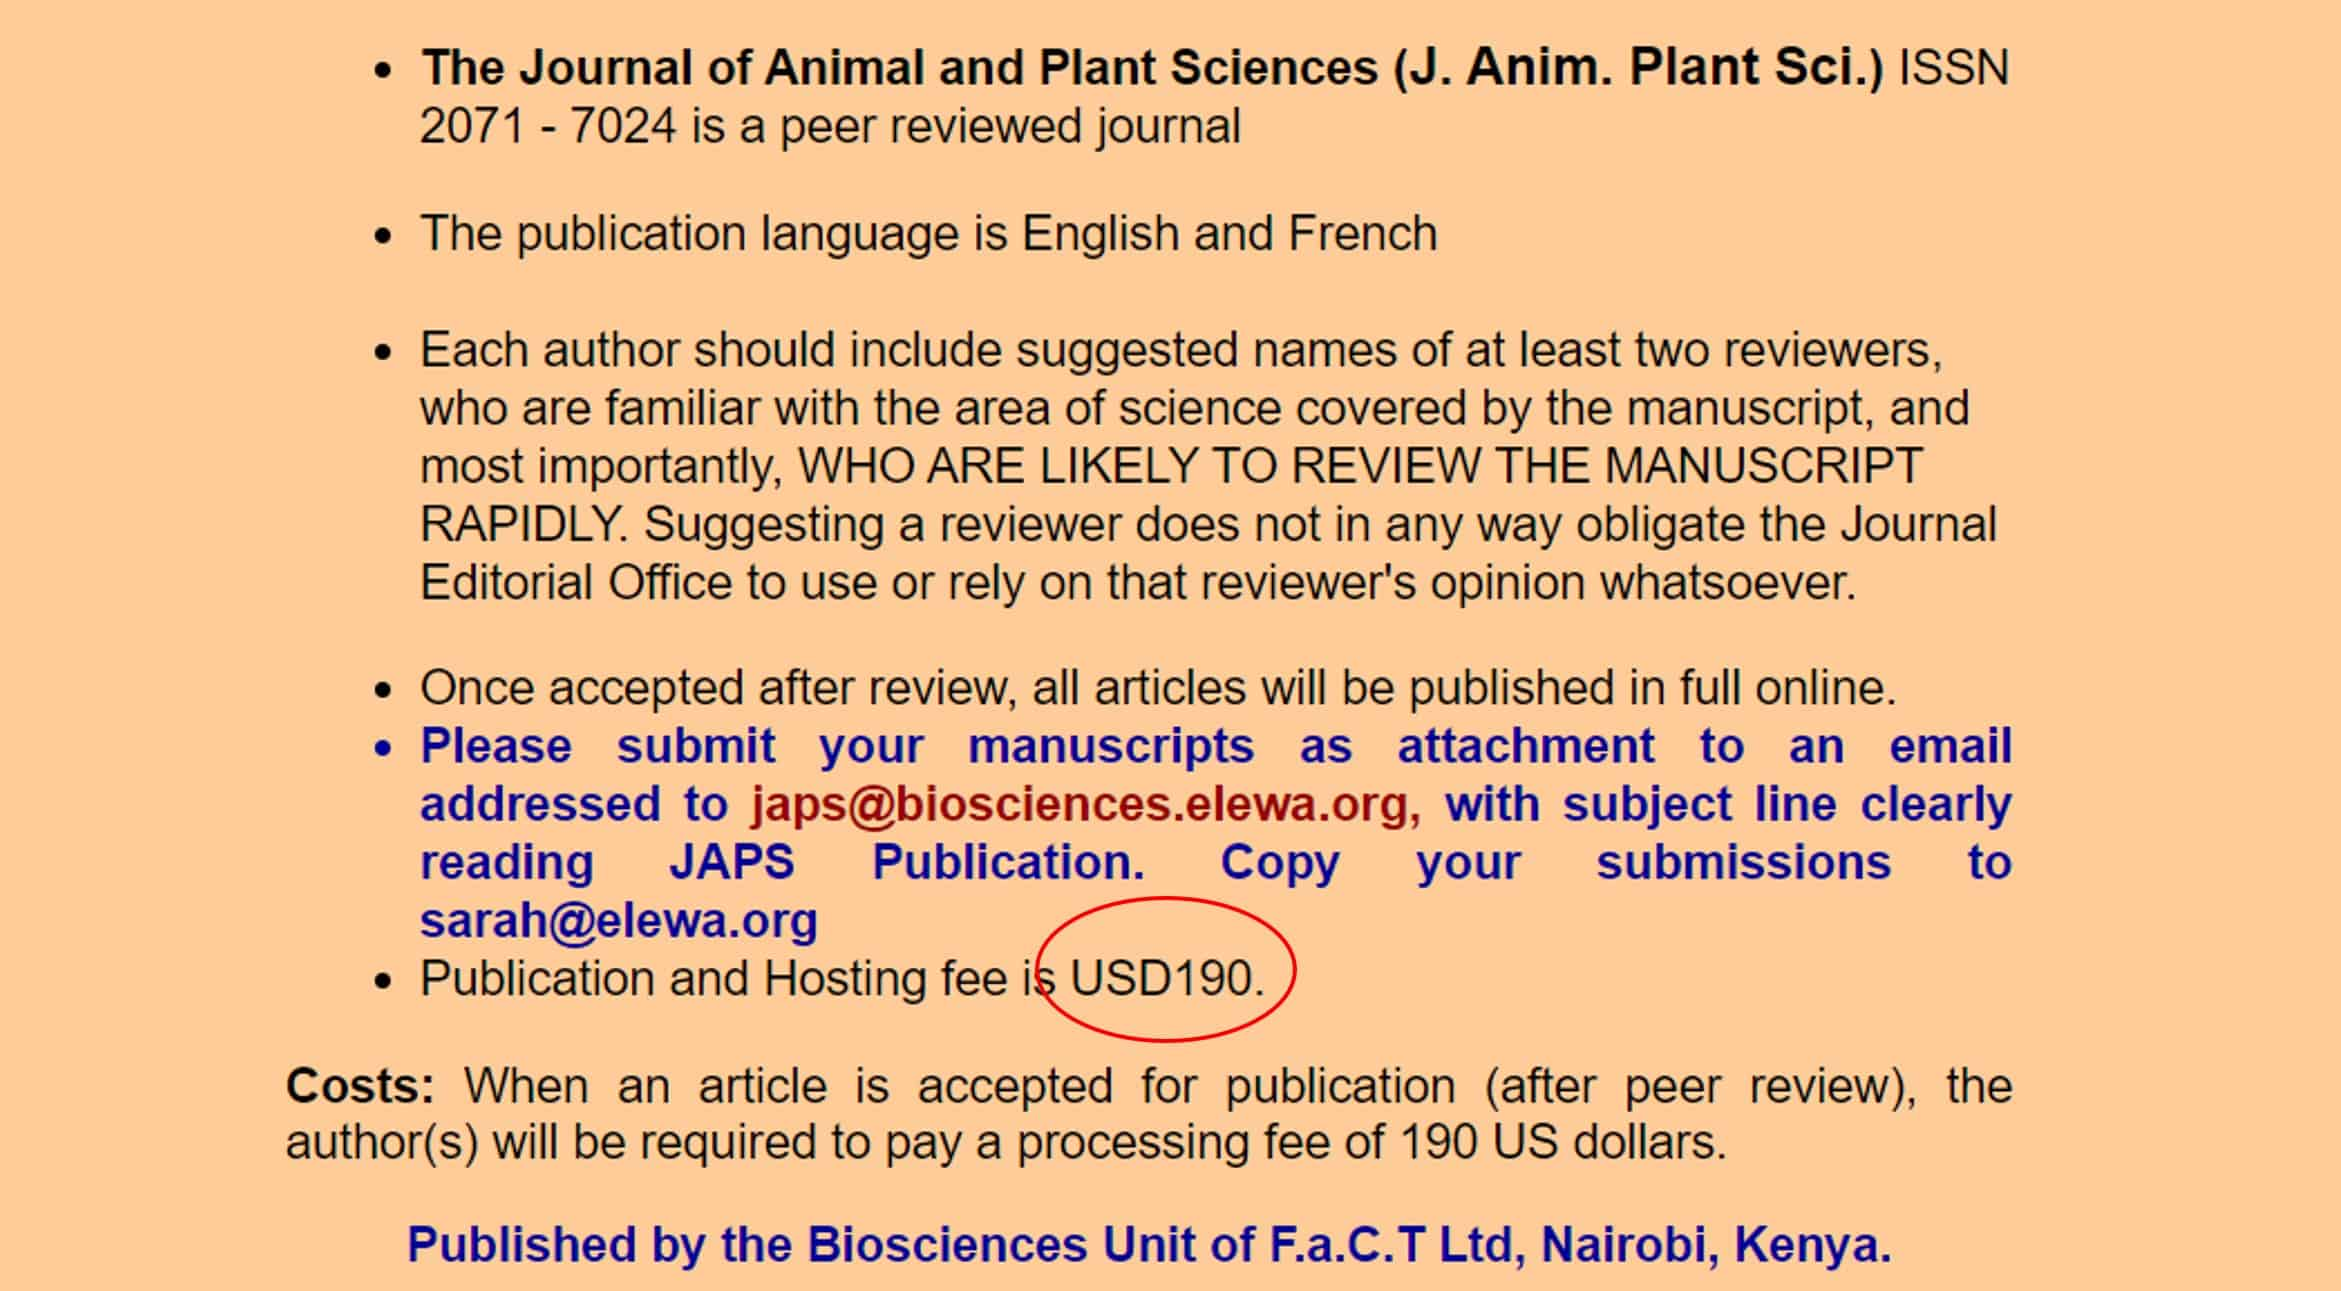 Image from predatory journals showing the very low ($190 USD) article processing charge.